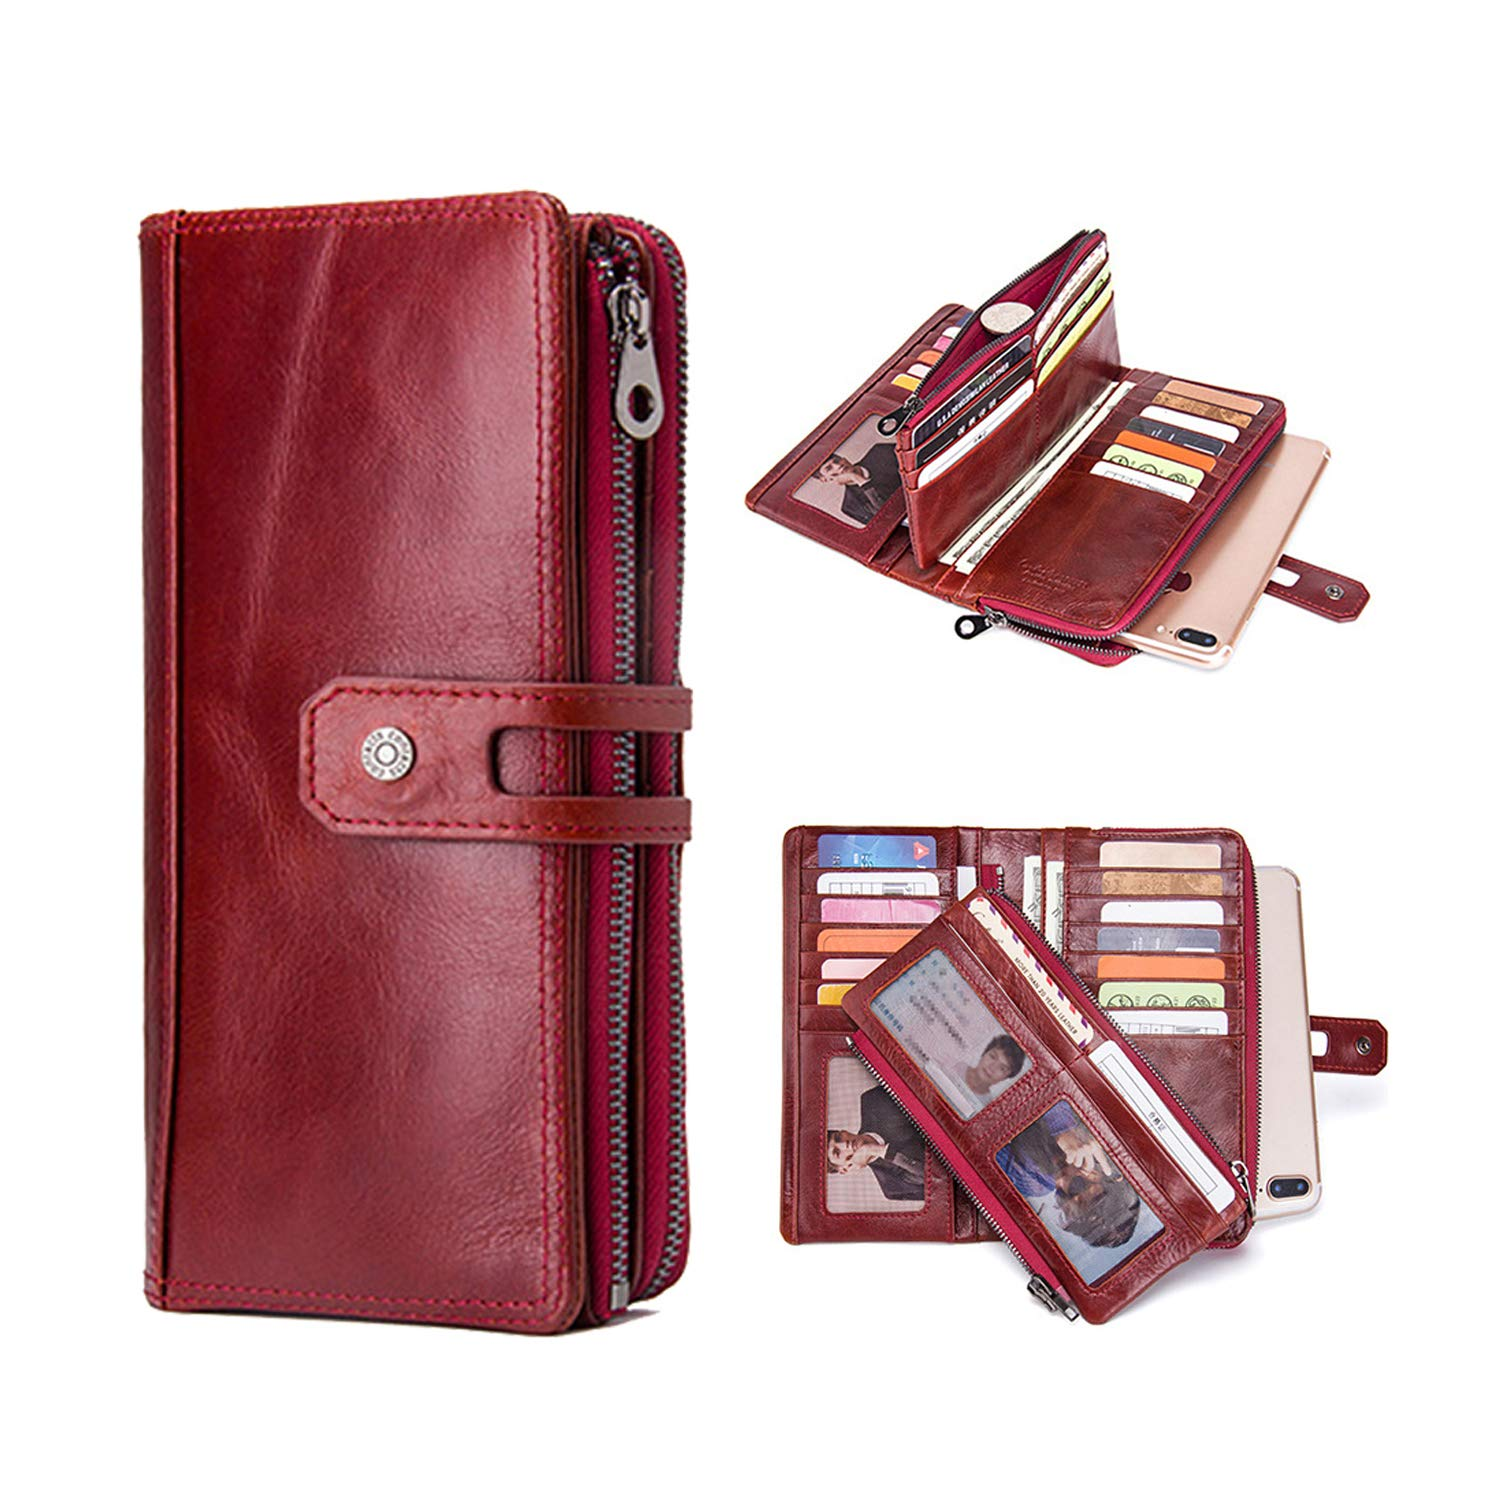 Samsung S9 Plus Wallet,Handmade Genuine Leather Women's Wallets Bifold Pockets and Snap Fastener Card Cases Wallets Long Double Zip Bag Purse Red